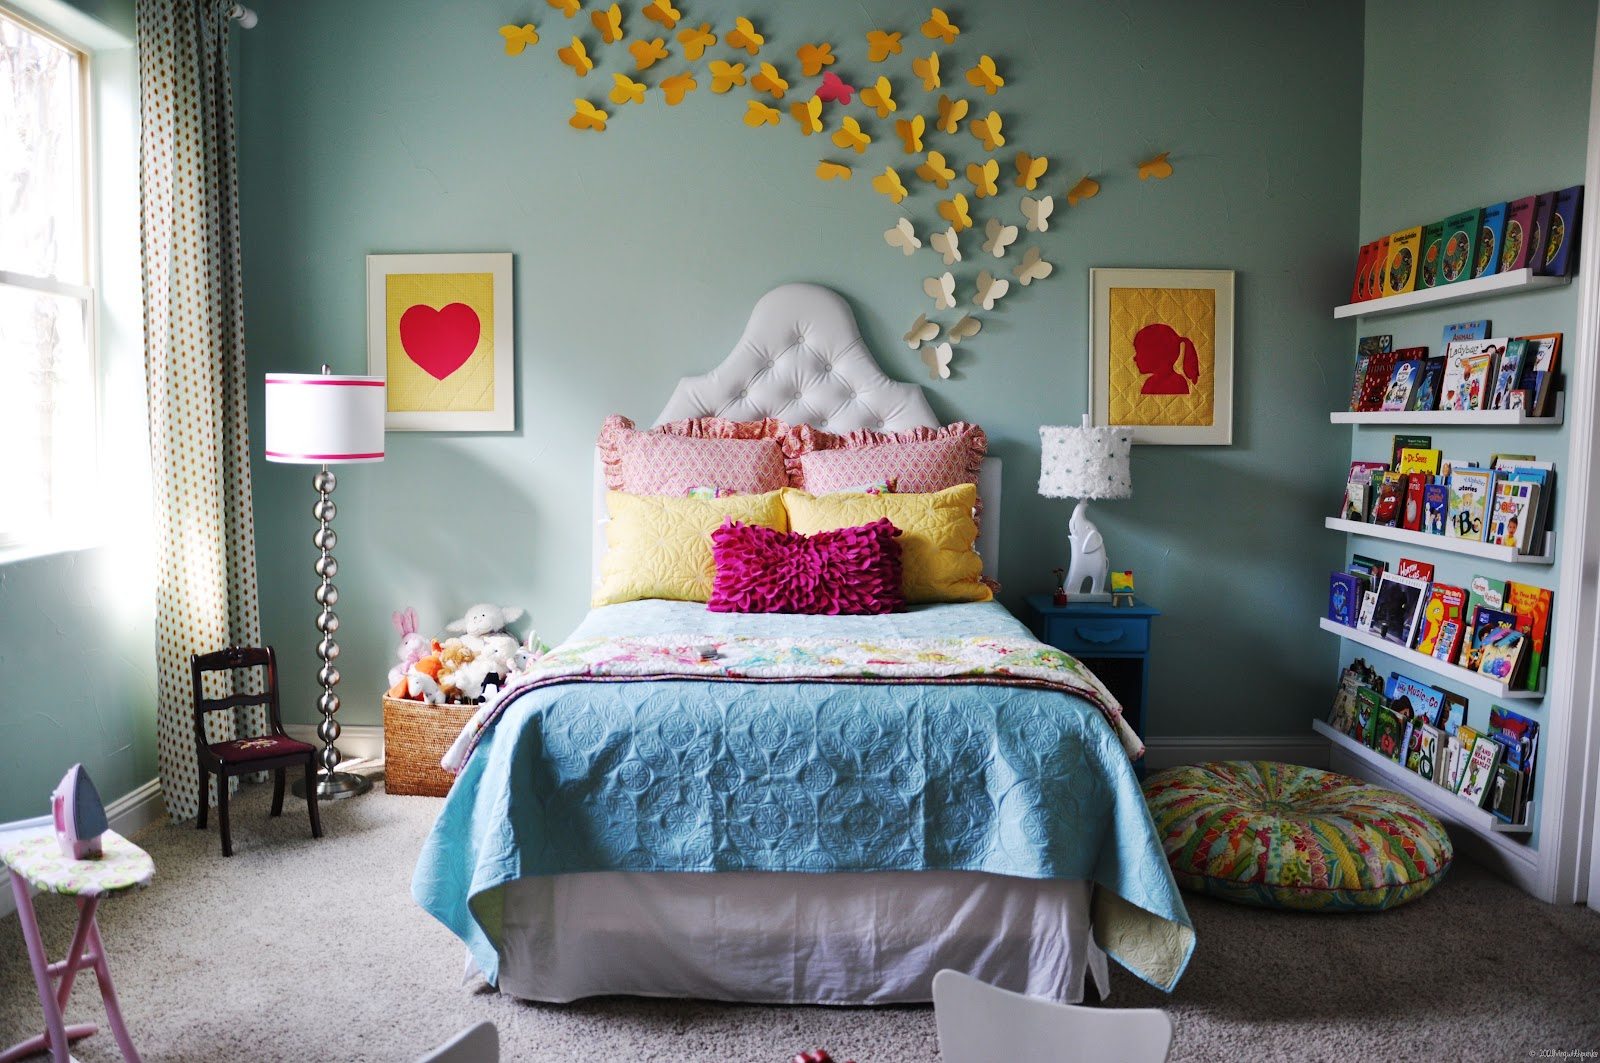 Big girl bedroom ideas - Photos of girls bedroom ...